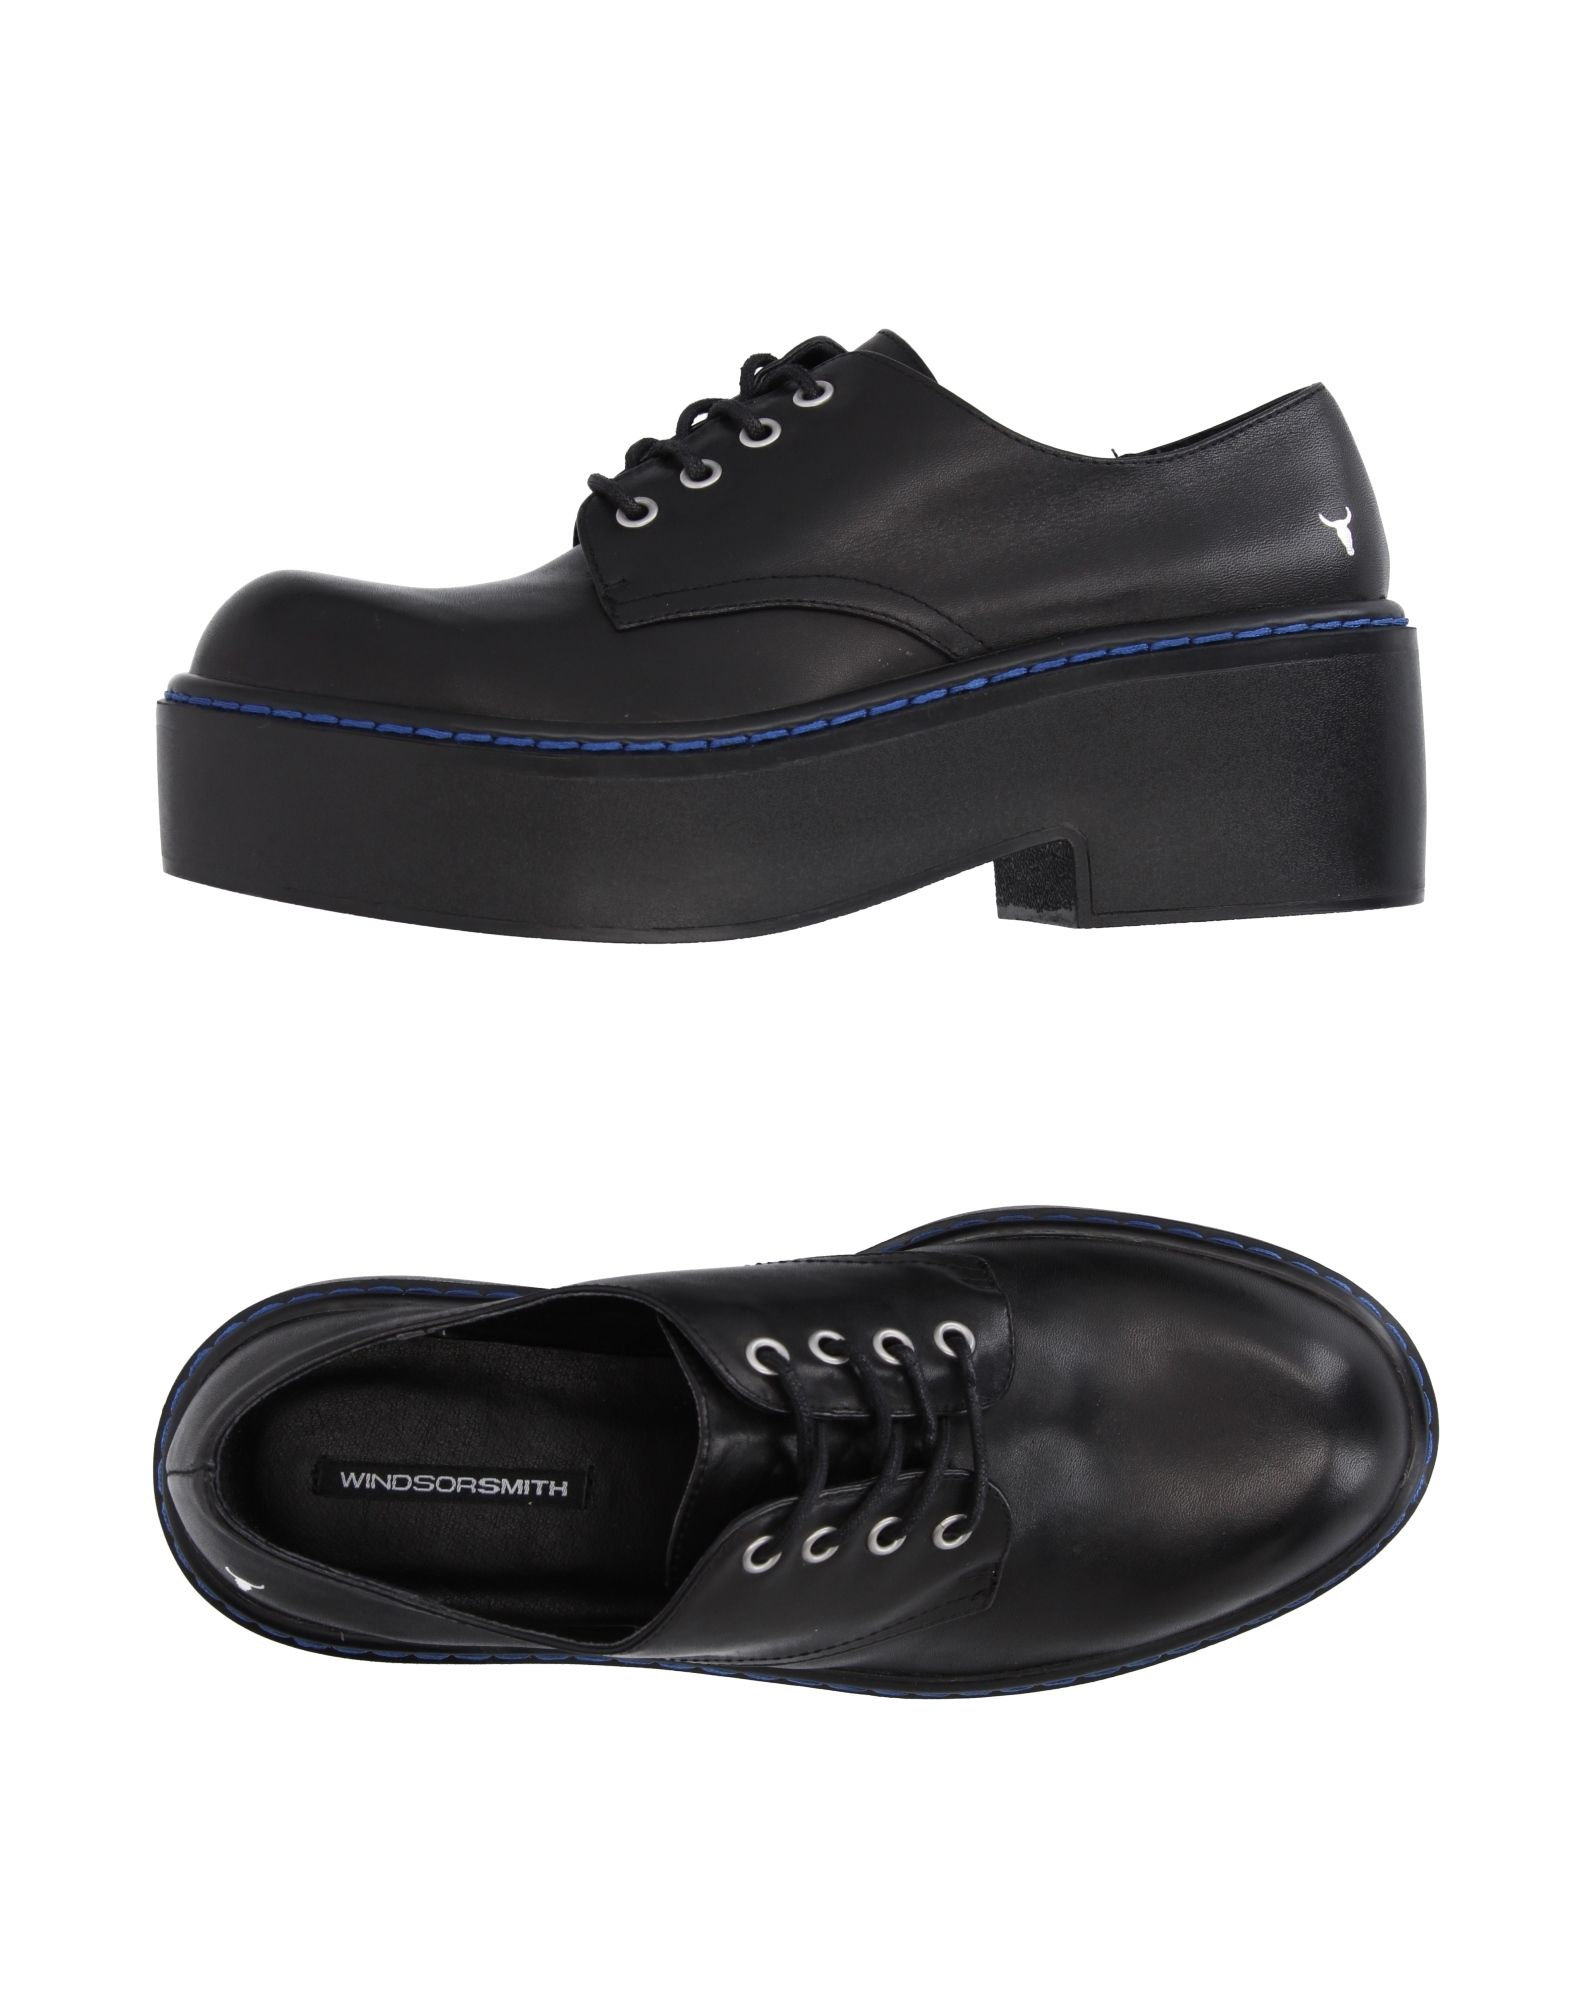 windsor smith female windsor smith laceup shoes